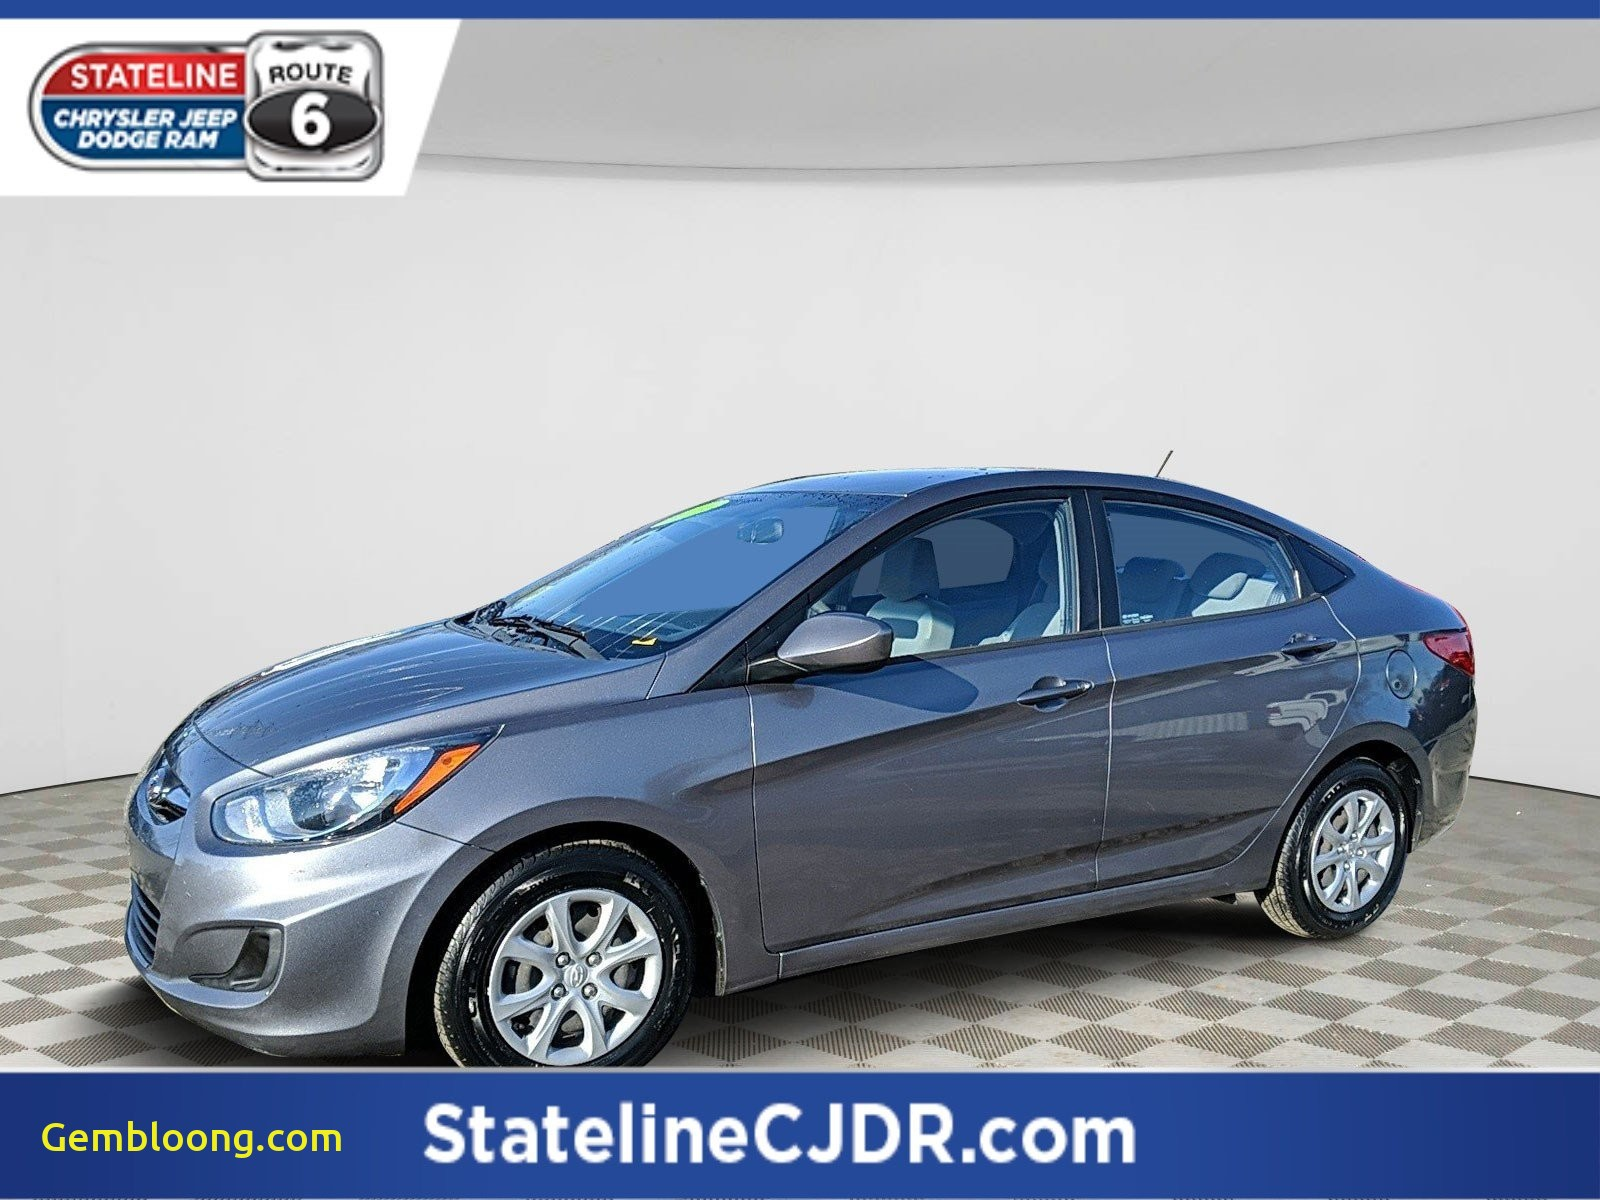 Cars for Sale Near Me Under 5000 Inspirational Bargain Used Cars somerset Ma